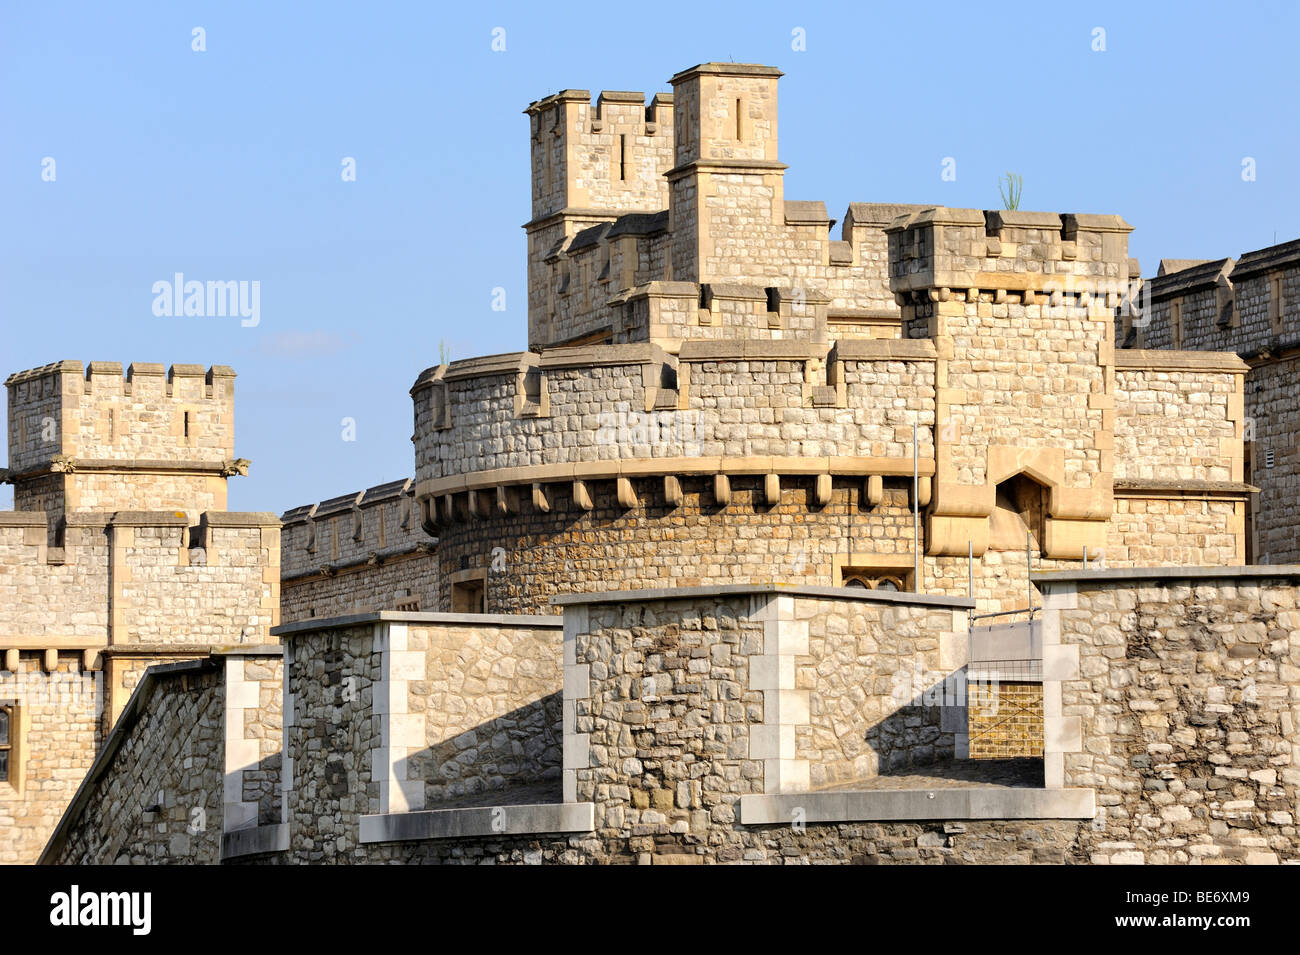 Defense towers with battlements of the Tower of London, England, United Kingdom, Europe - Stock Image